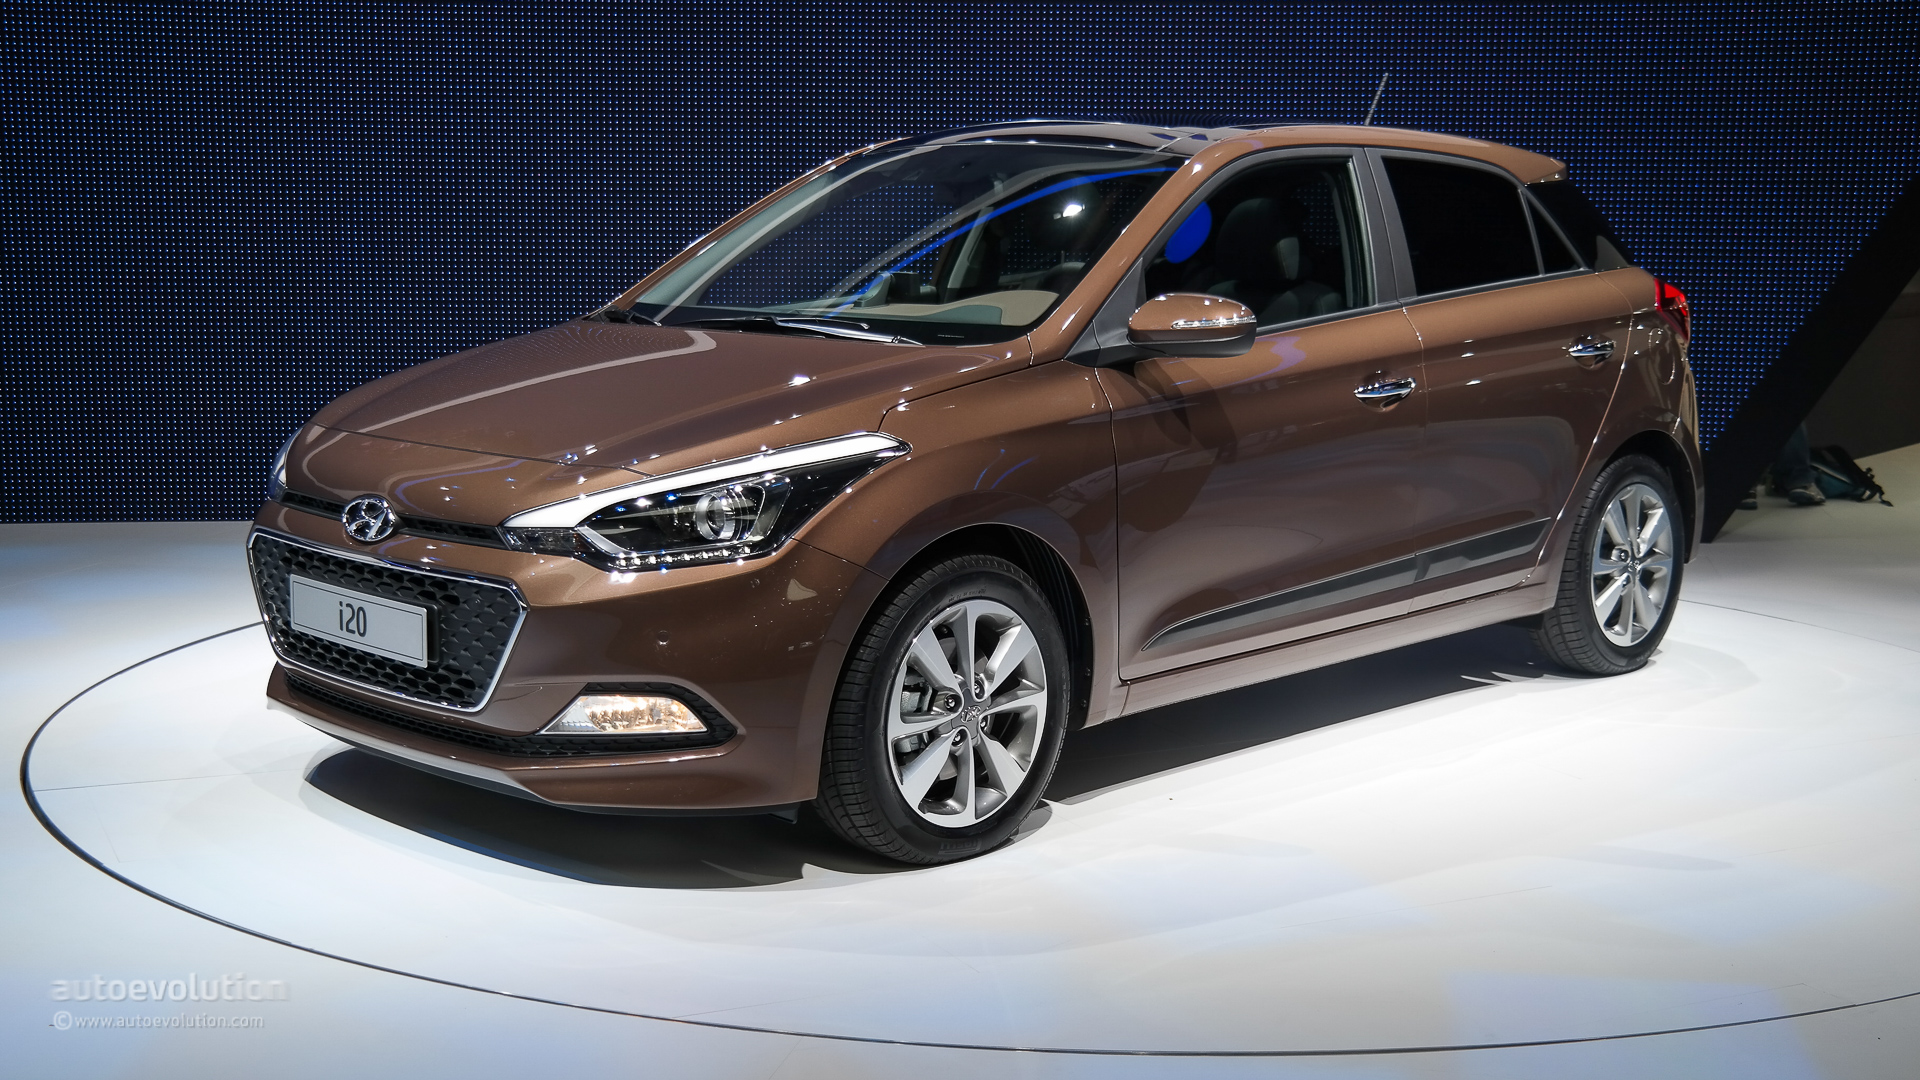 Hyundai I20 Pops Out At Paris Motor Show 2014 Live Photos HD Wallpapers Download free images and photos [musssic.tk]